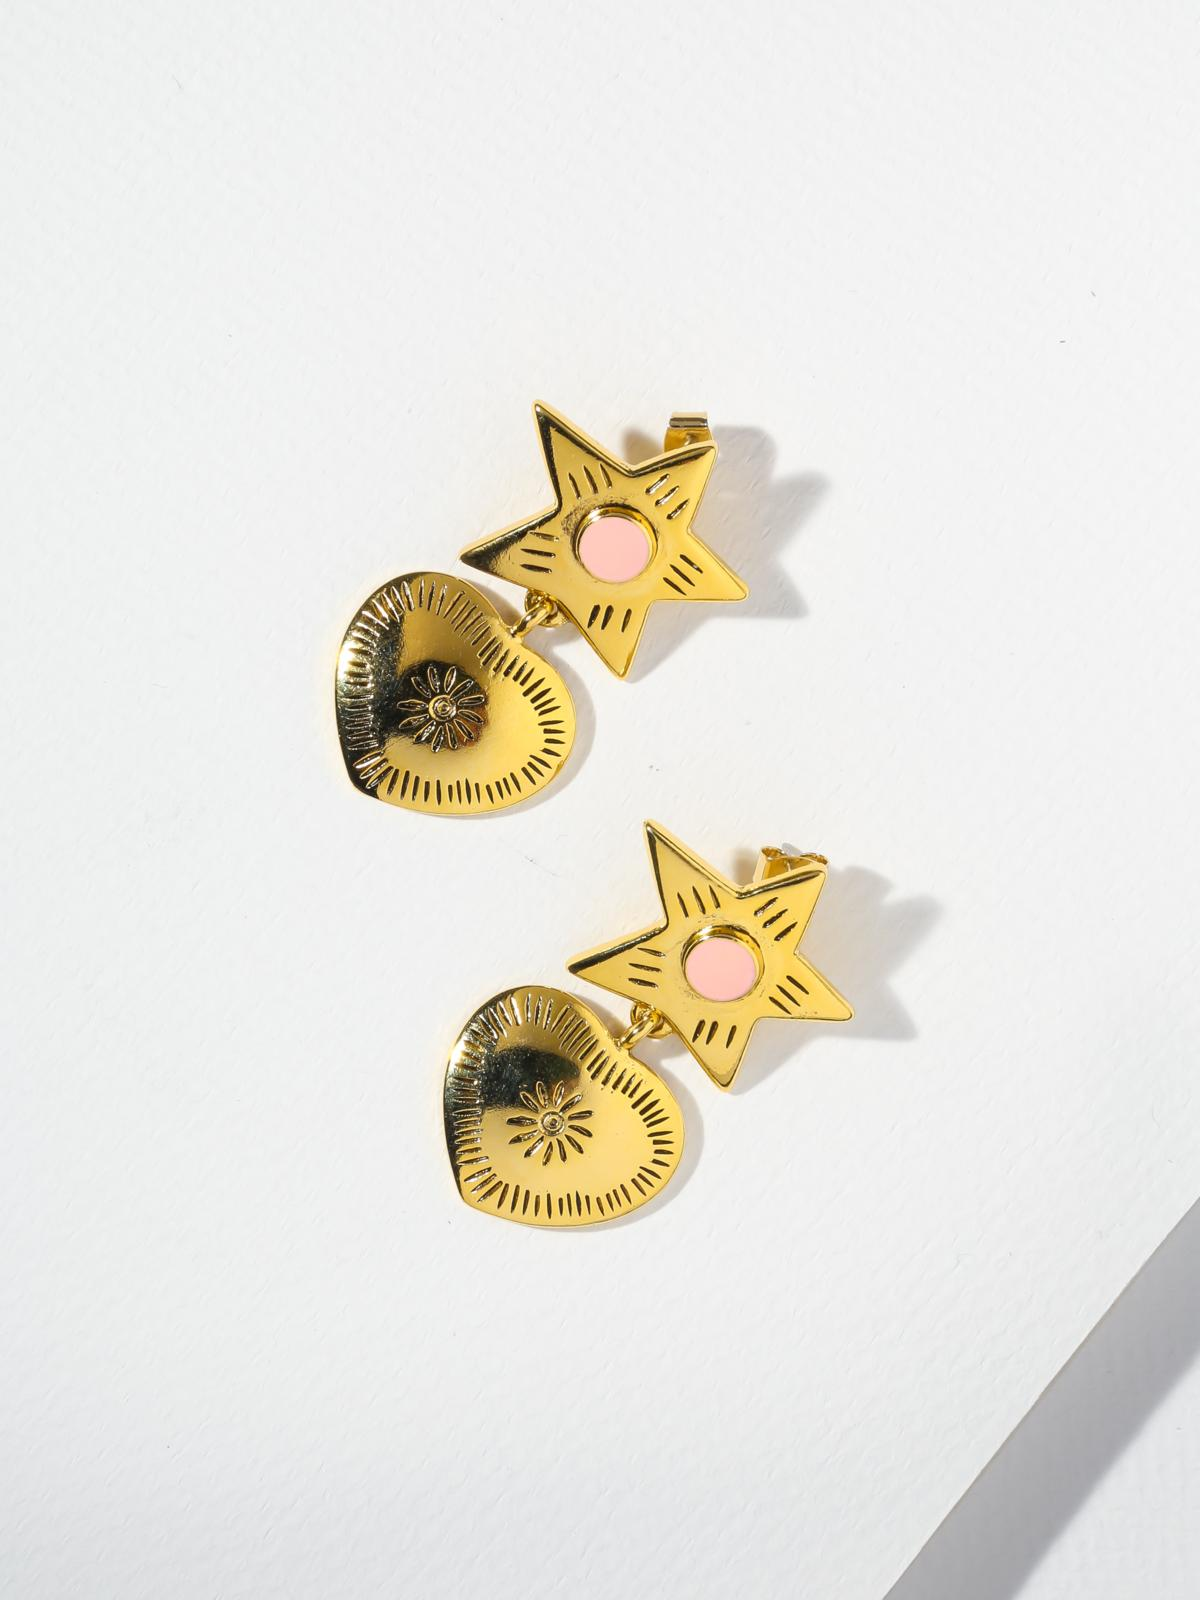 The Lonestar Earrings